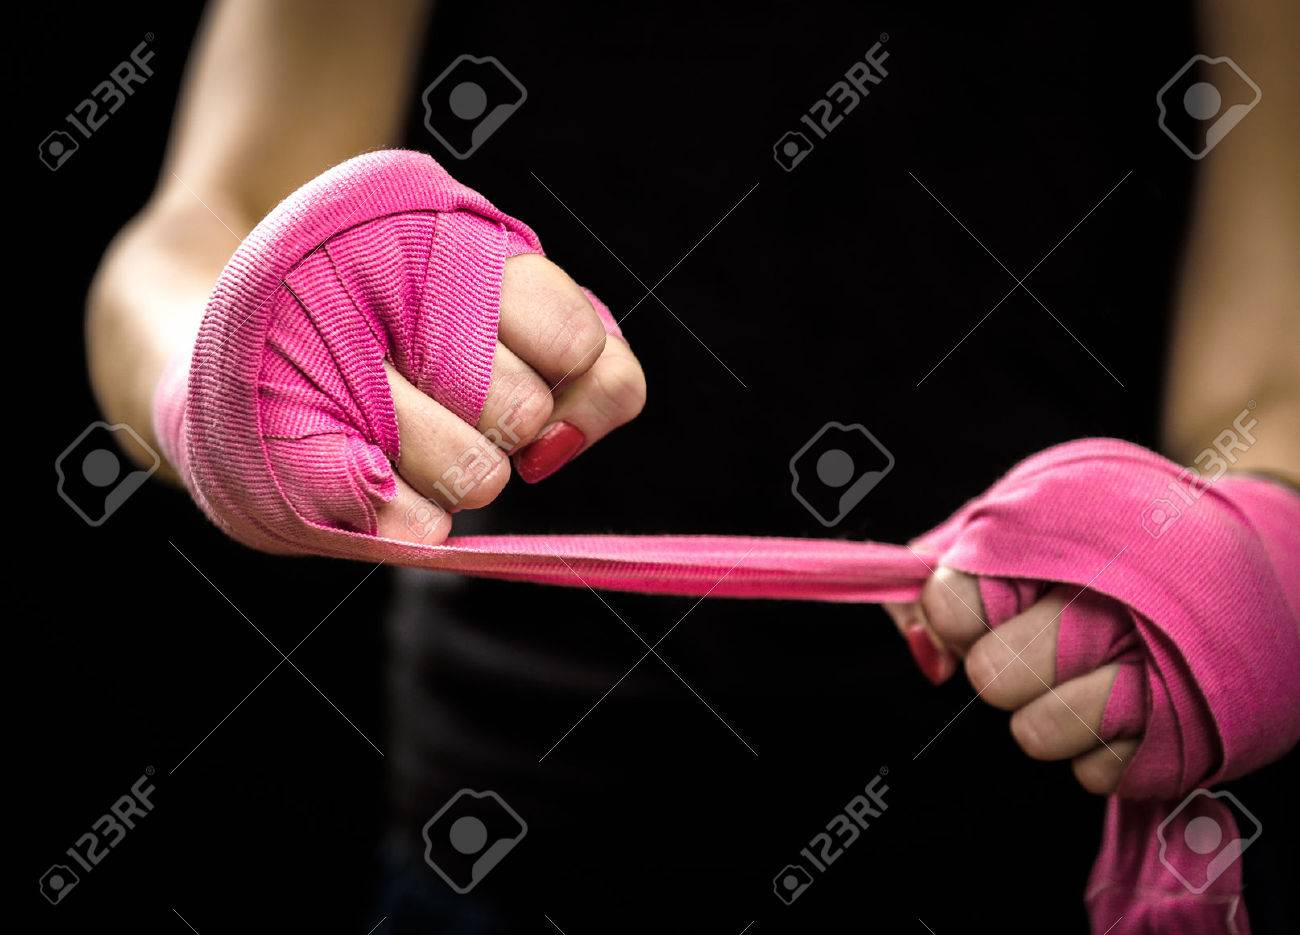 Woman is wrapping hands with pink boxing wraps. Isolated on black with red nails. Strong hand and fist, ready for fight and active exercise - 51071677